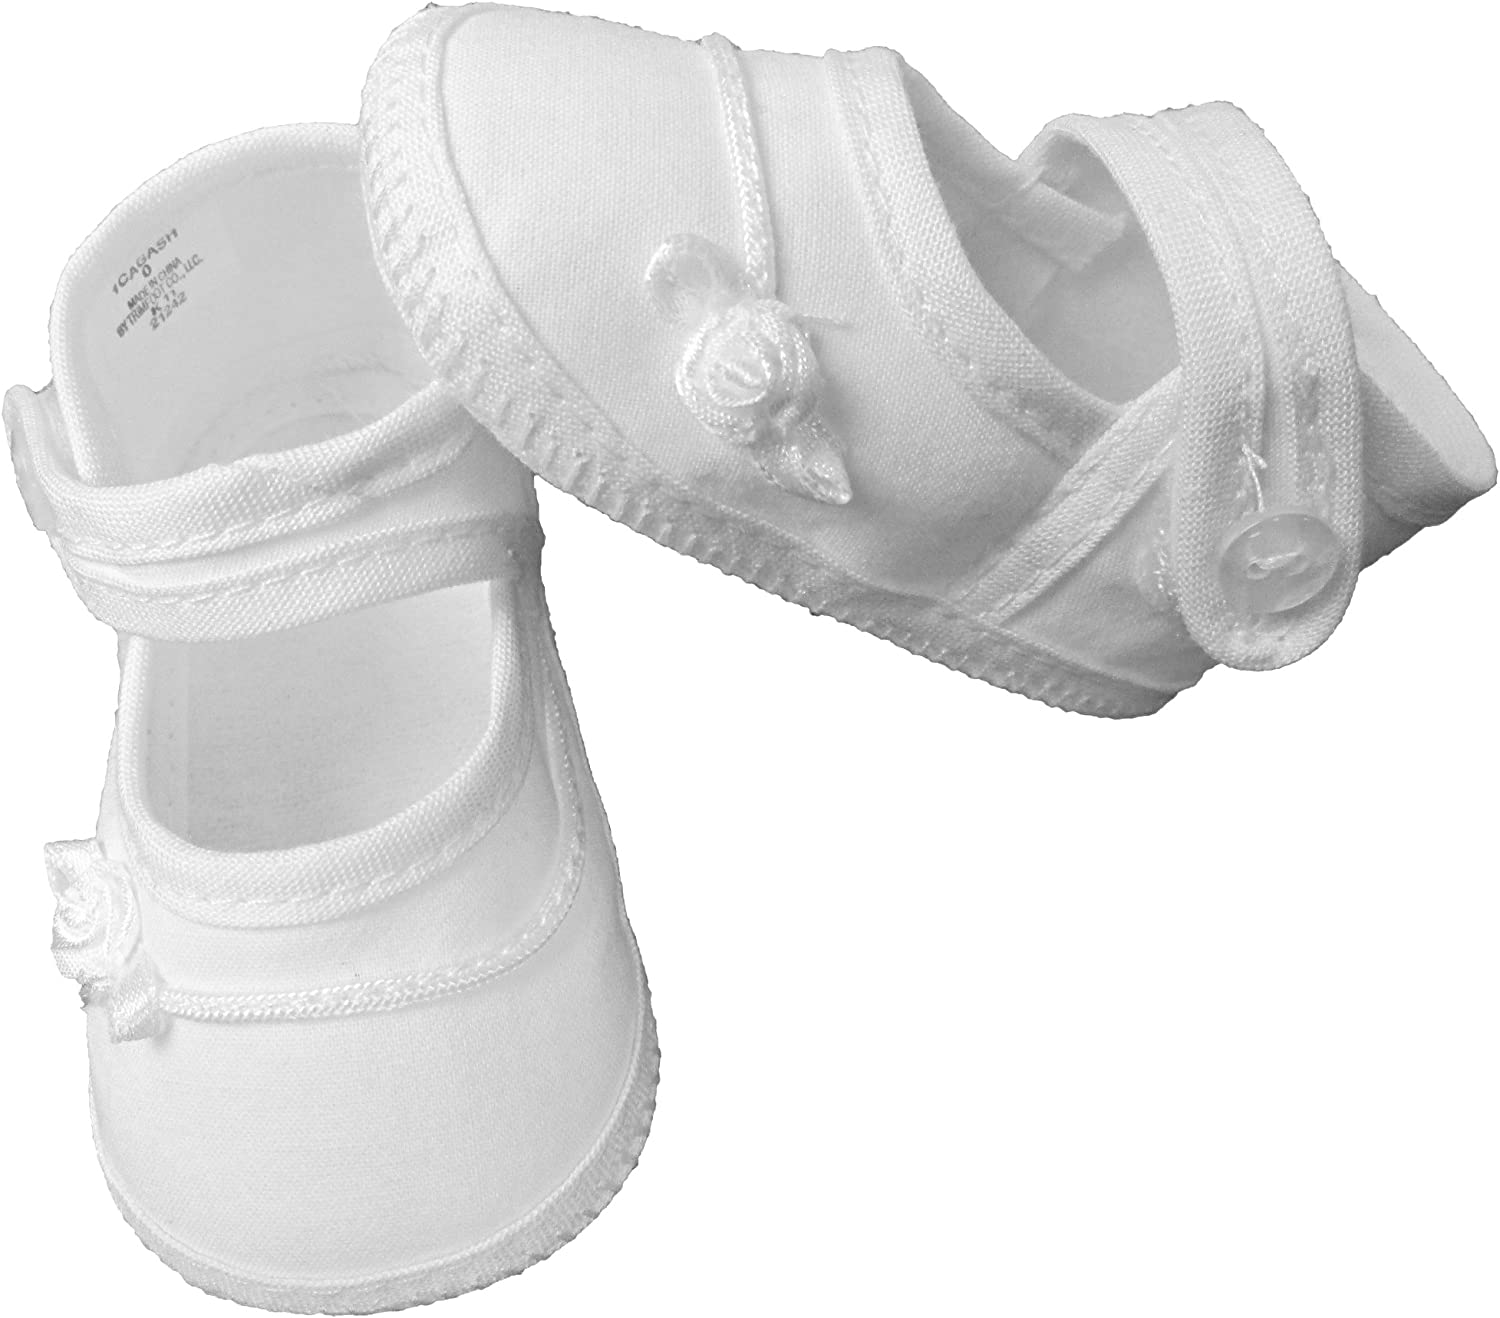 Little Things Mean A Lot Girls Cotton Batiste Shoe Embroidered with Tiny Braid and Rosebud